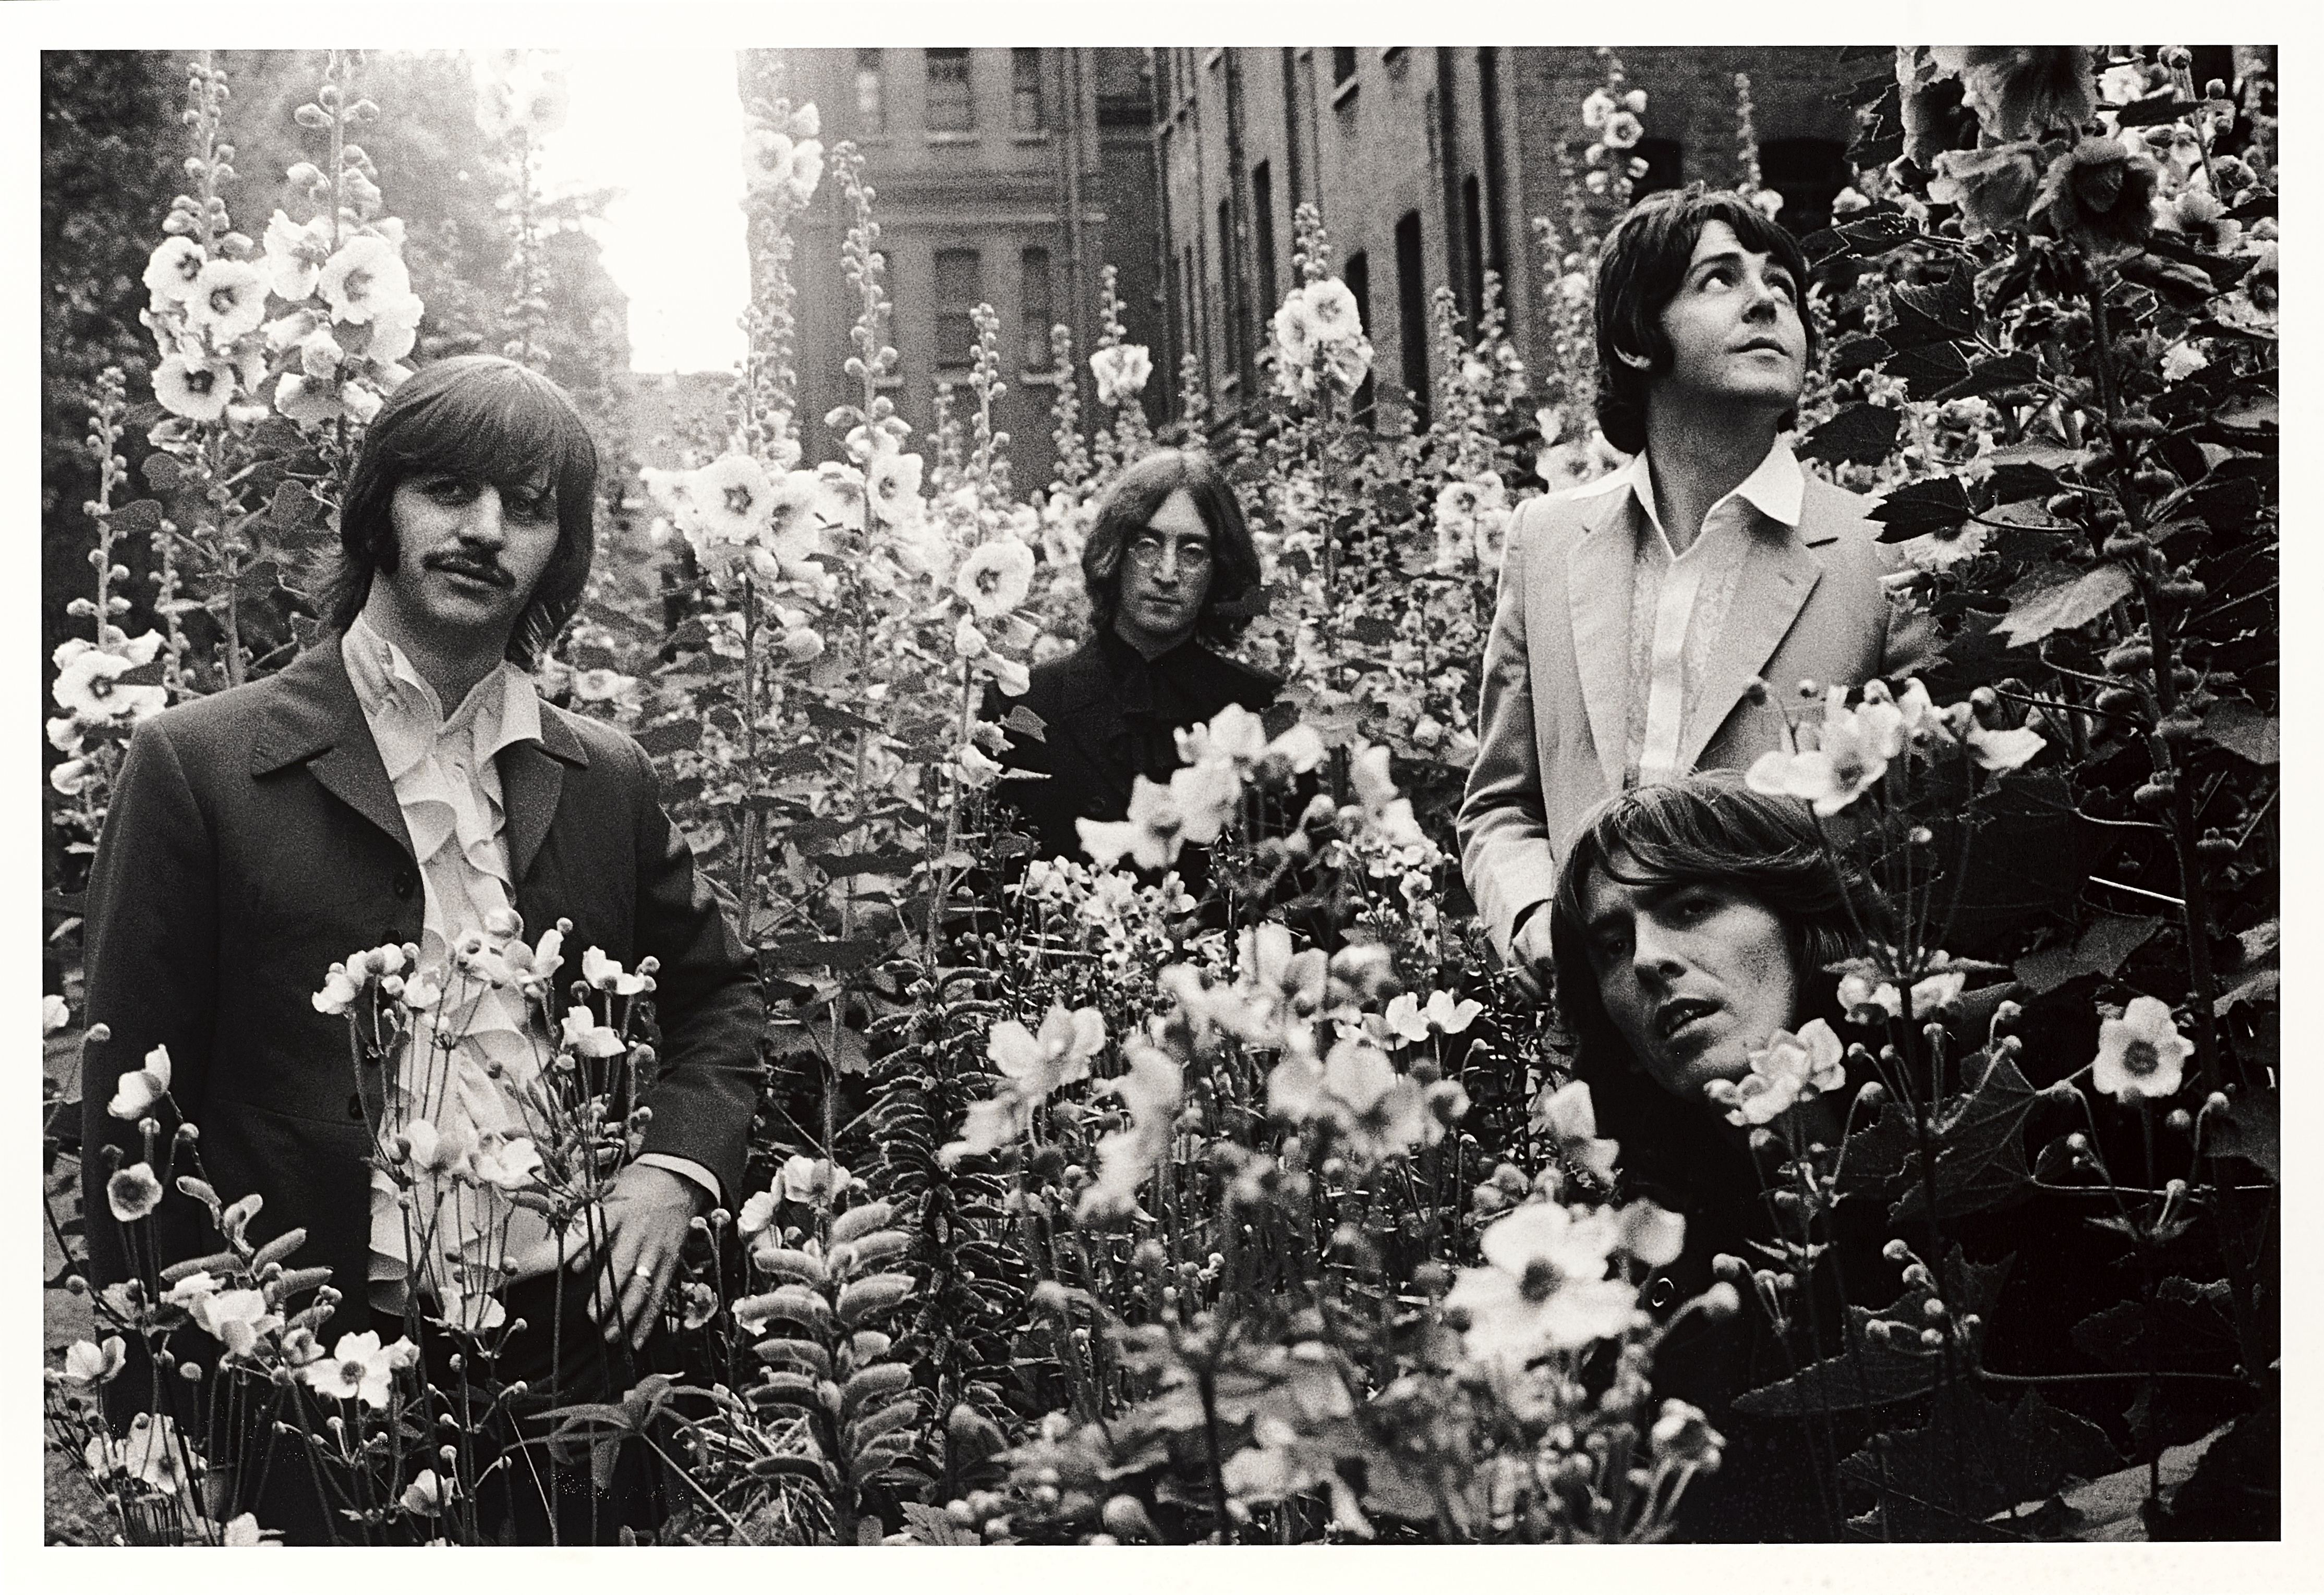 Lot 14 - A Limited Edition Photograph Of The Beatles By Tom Murray (American, born 1943) From The 'Mad Day...